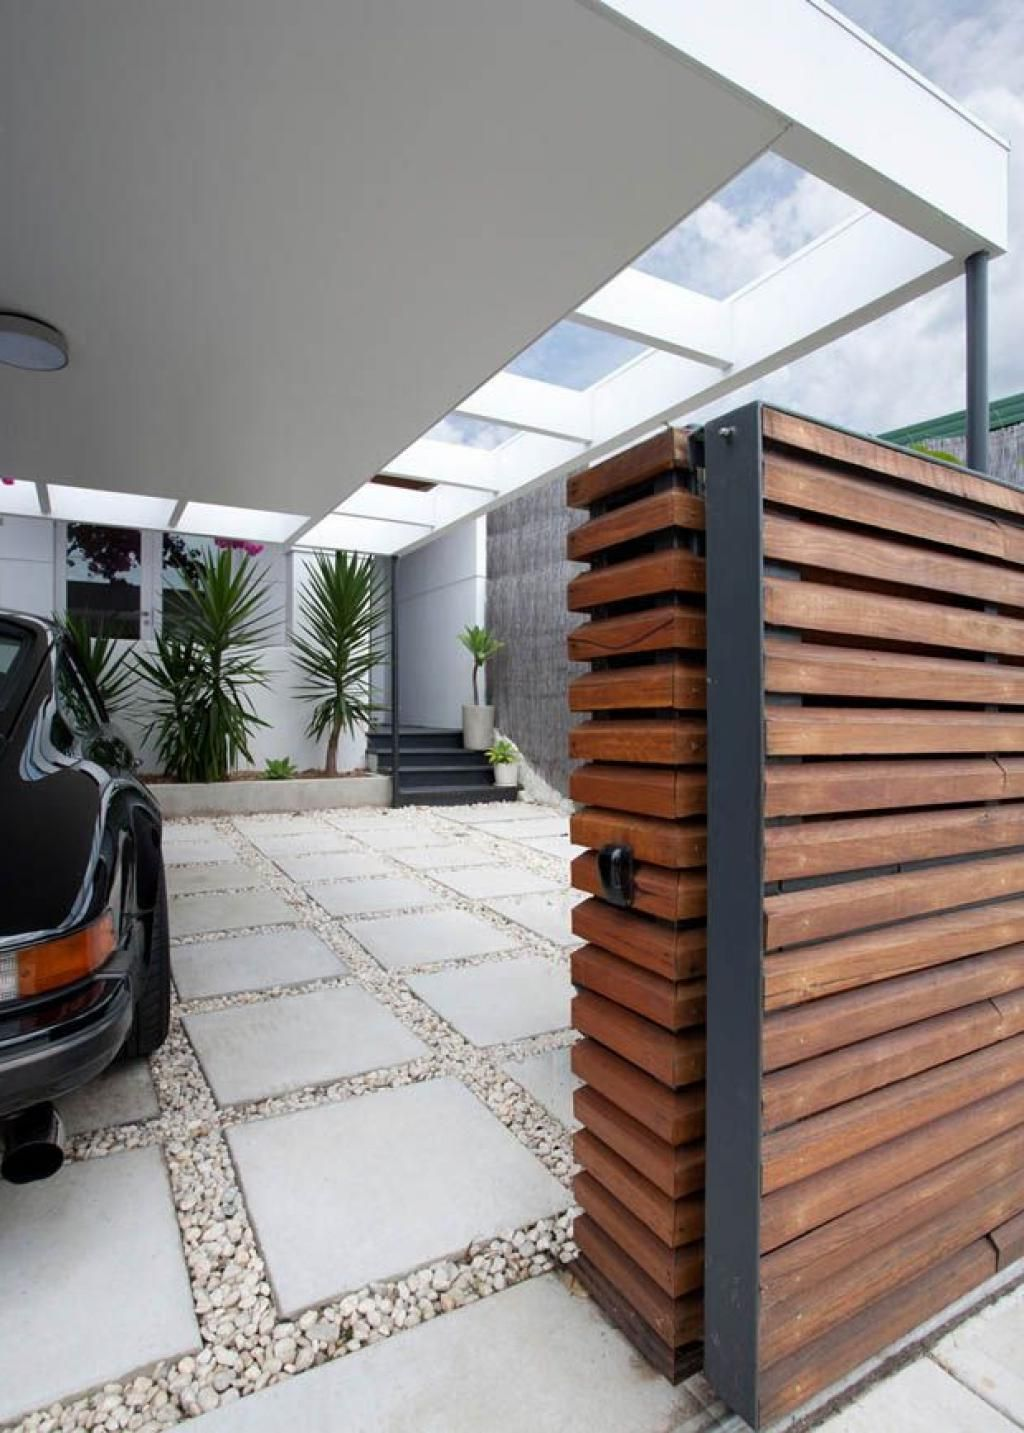 Carport Design Ideas wooden carport solid roof garage shed ideas house exterior Carport Designs